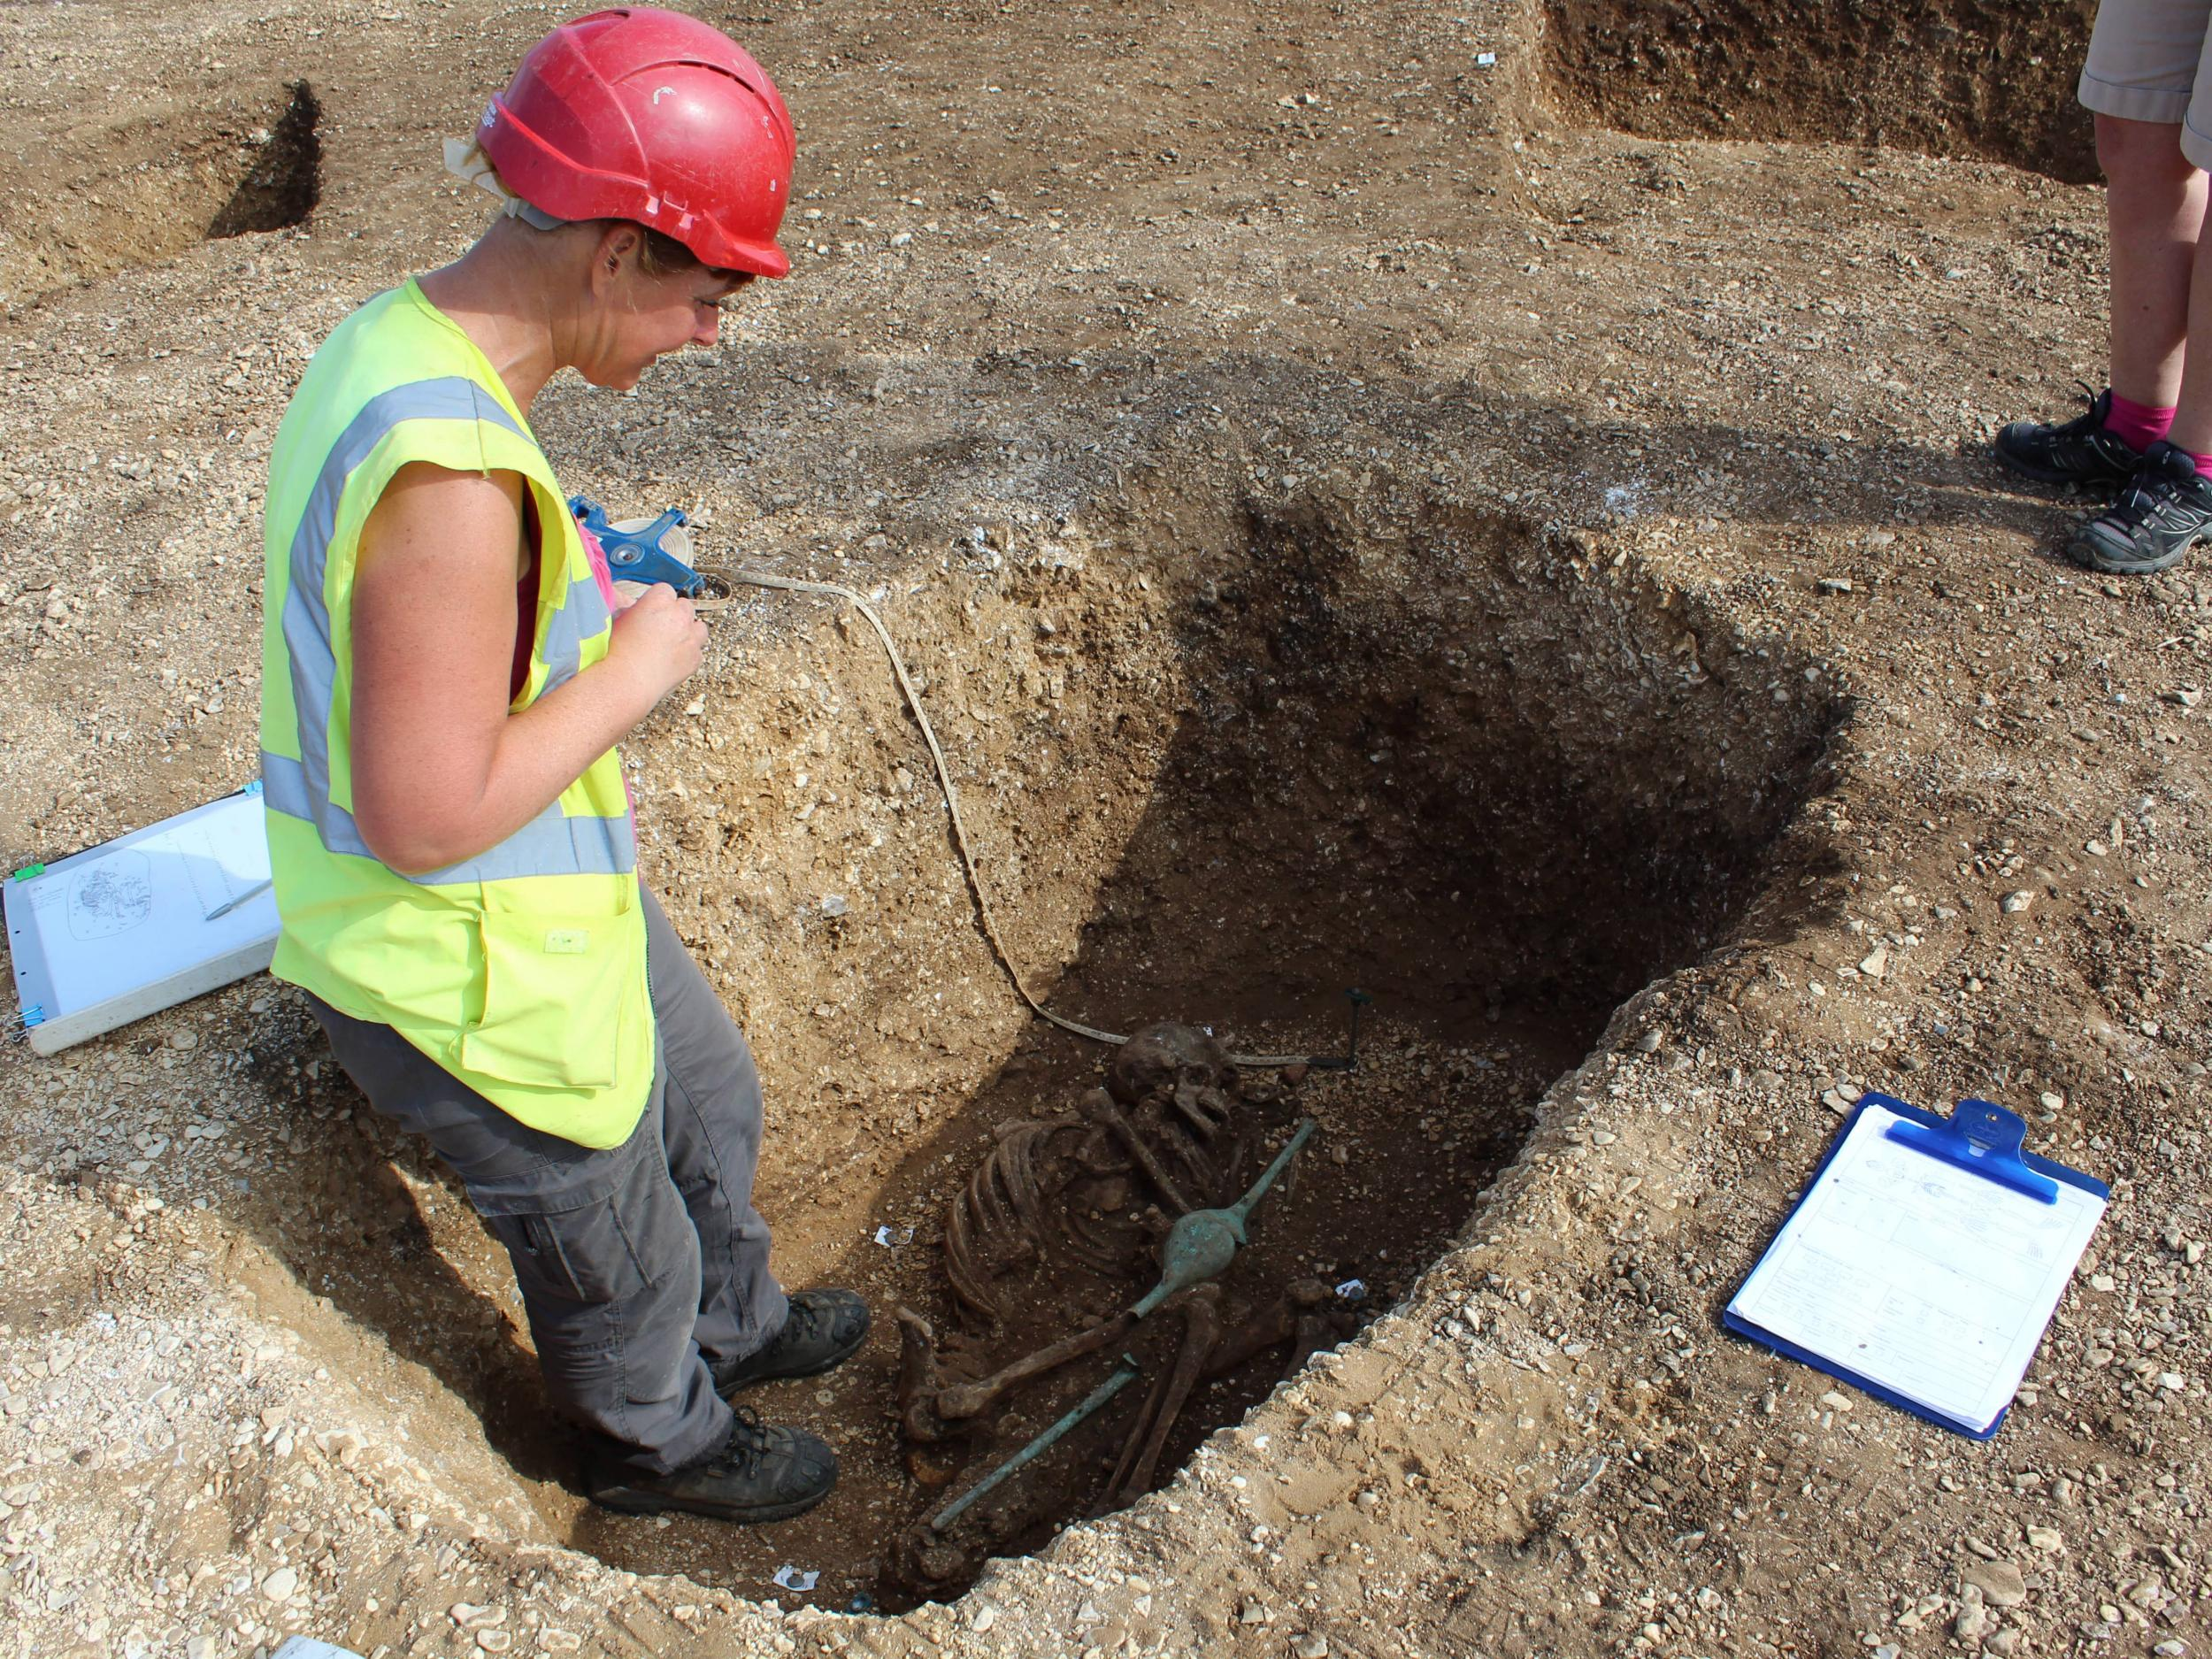 Blog Archive » Iron Age speared corpse burial found